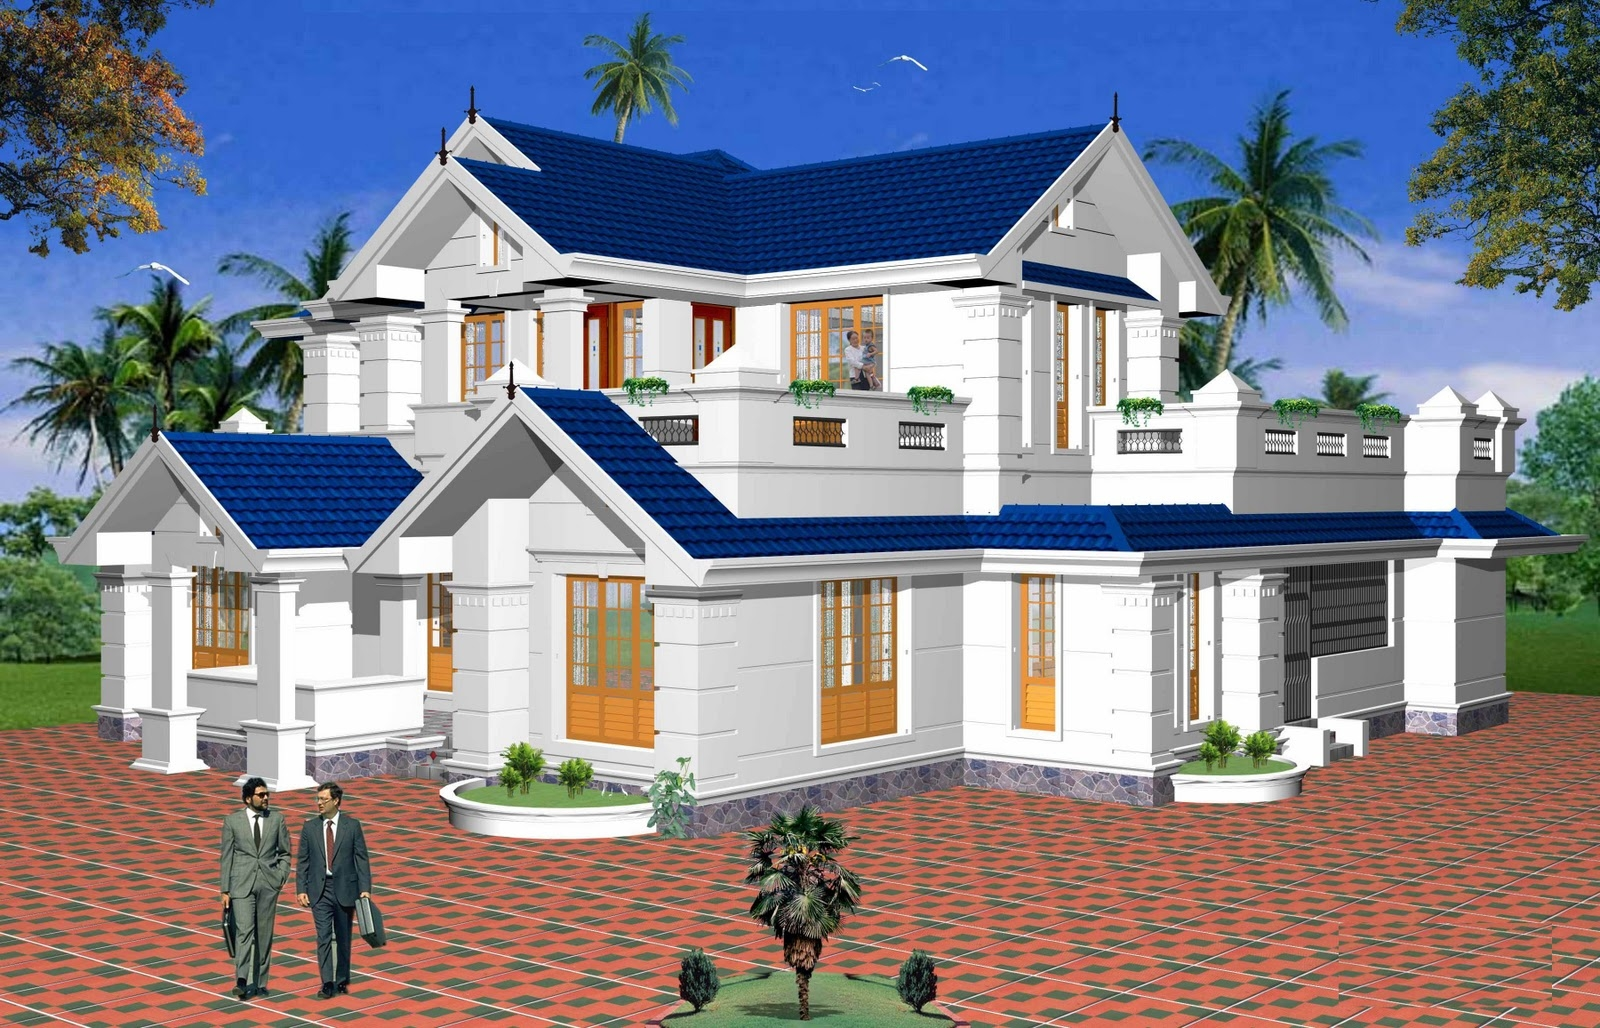 To Start The Construction Of Any Home, Designing Of The House Plans Is The  First And The Most Critical Step. You Bought A Plot At A Hi Fi Place, ...